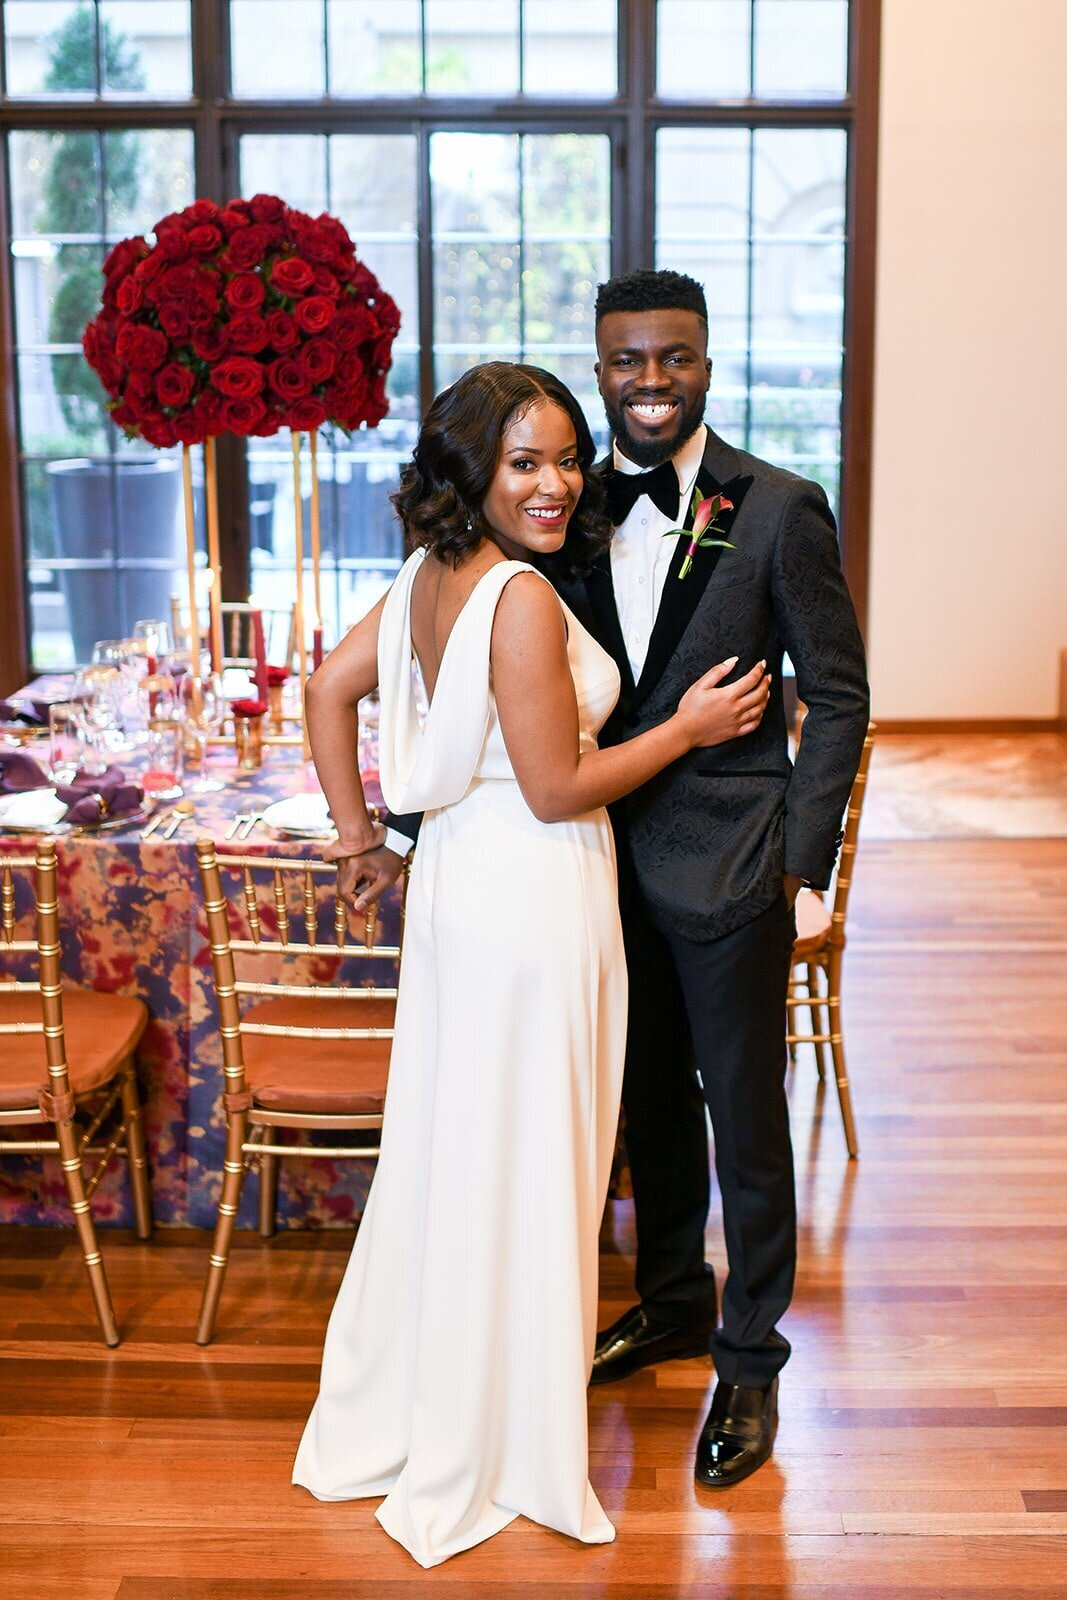 red-wedding-tall-smiling-bride-groom-receptions-klassy-kreations